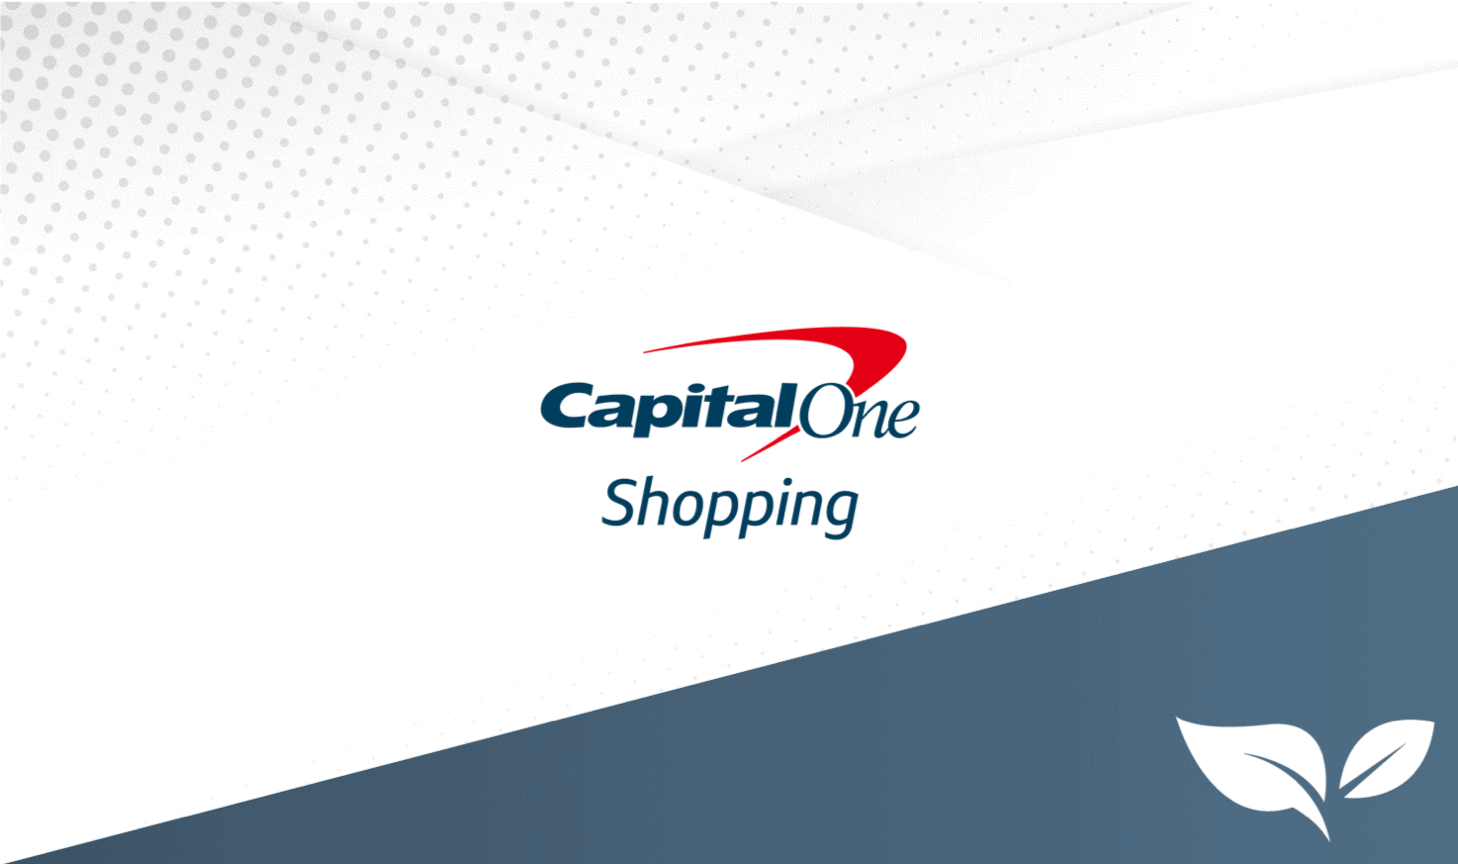 Capital One Shopping Review 10: What We Love (and Hate) About It